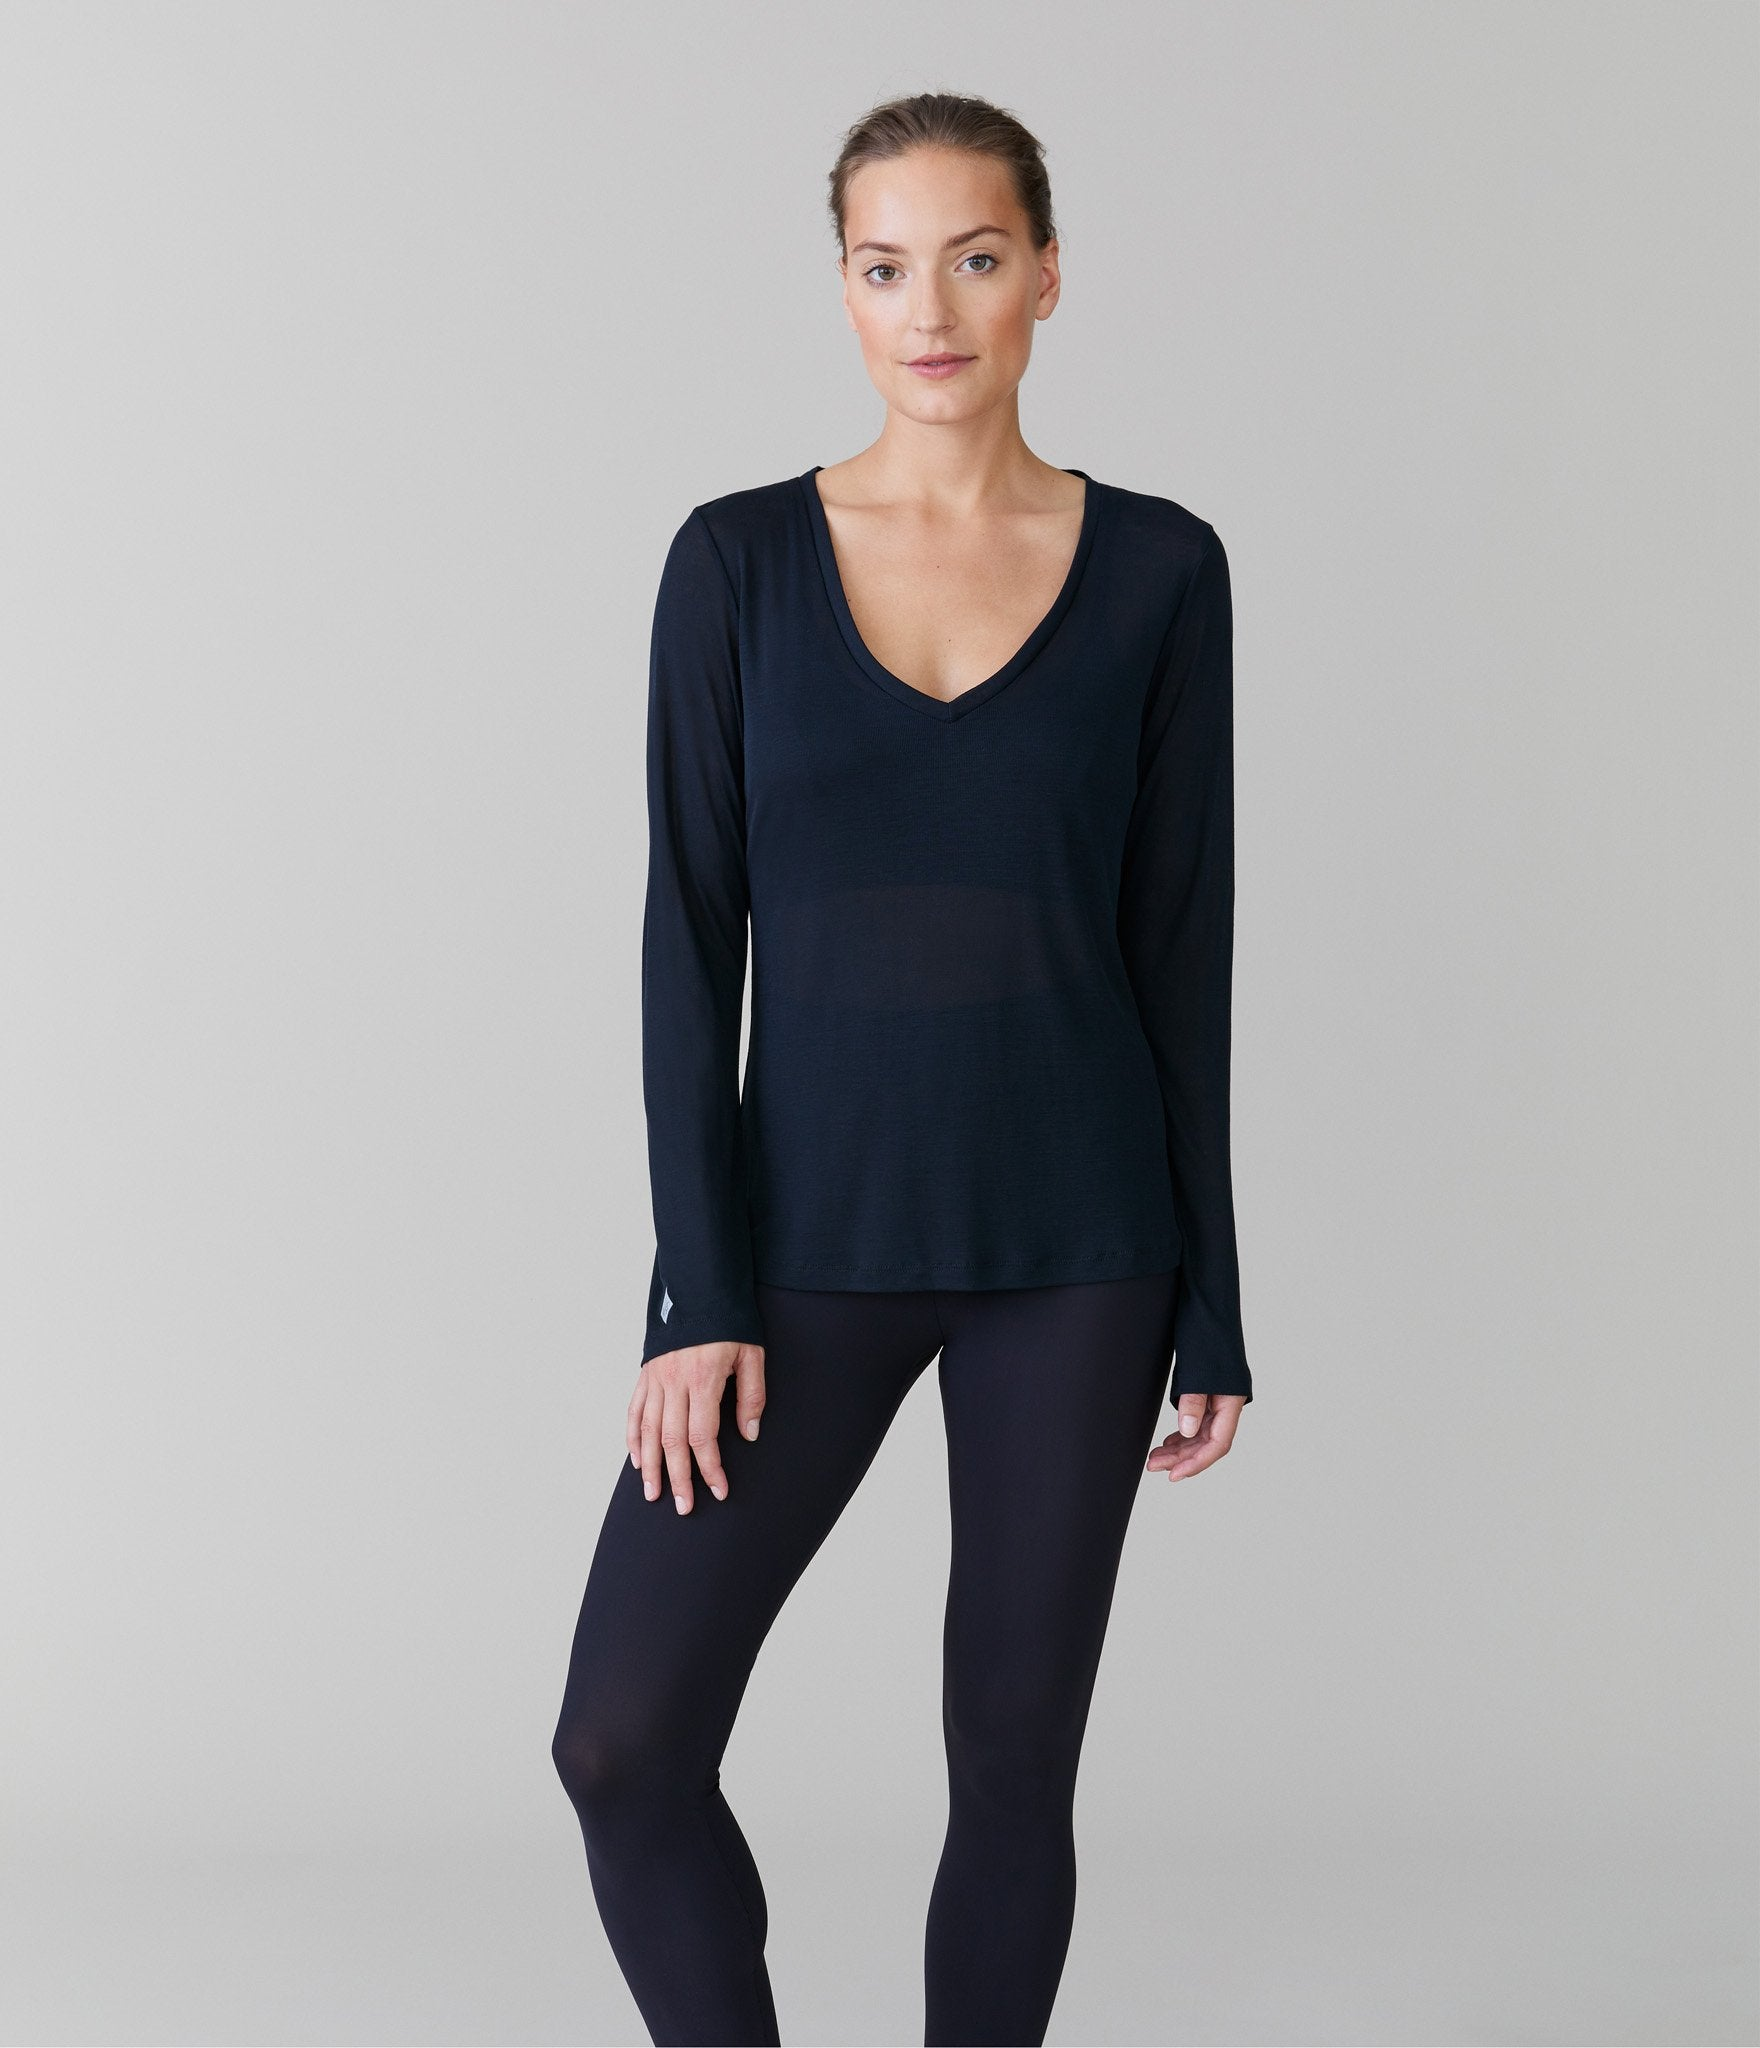 Oslo long sleeve t-shirt</br>Black